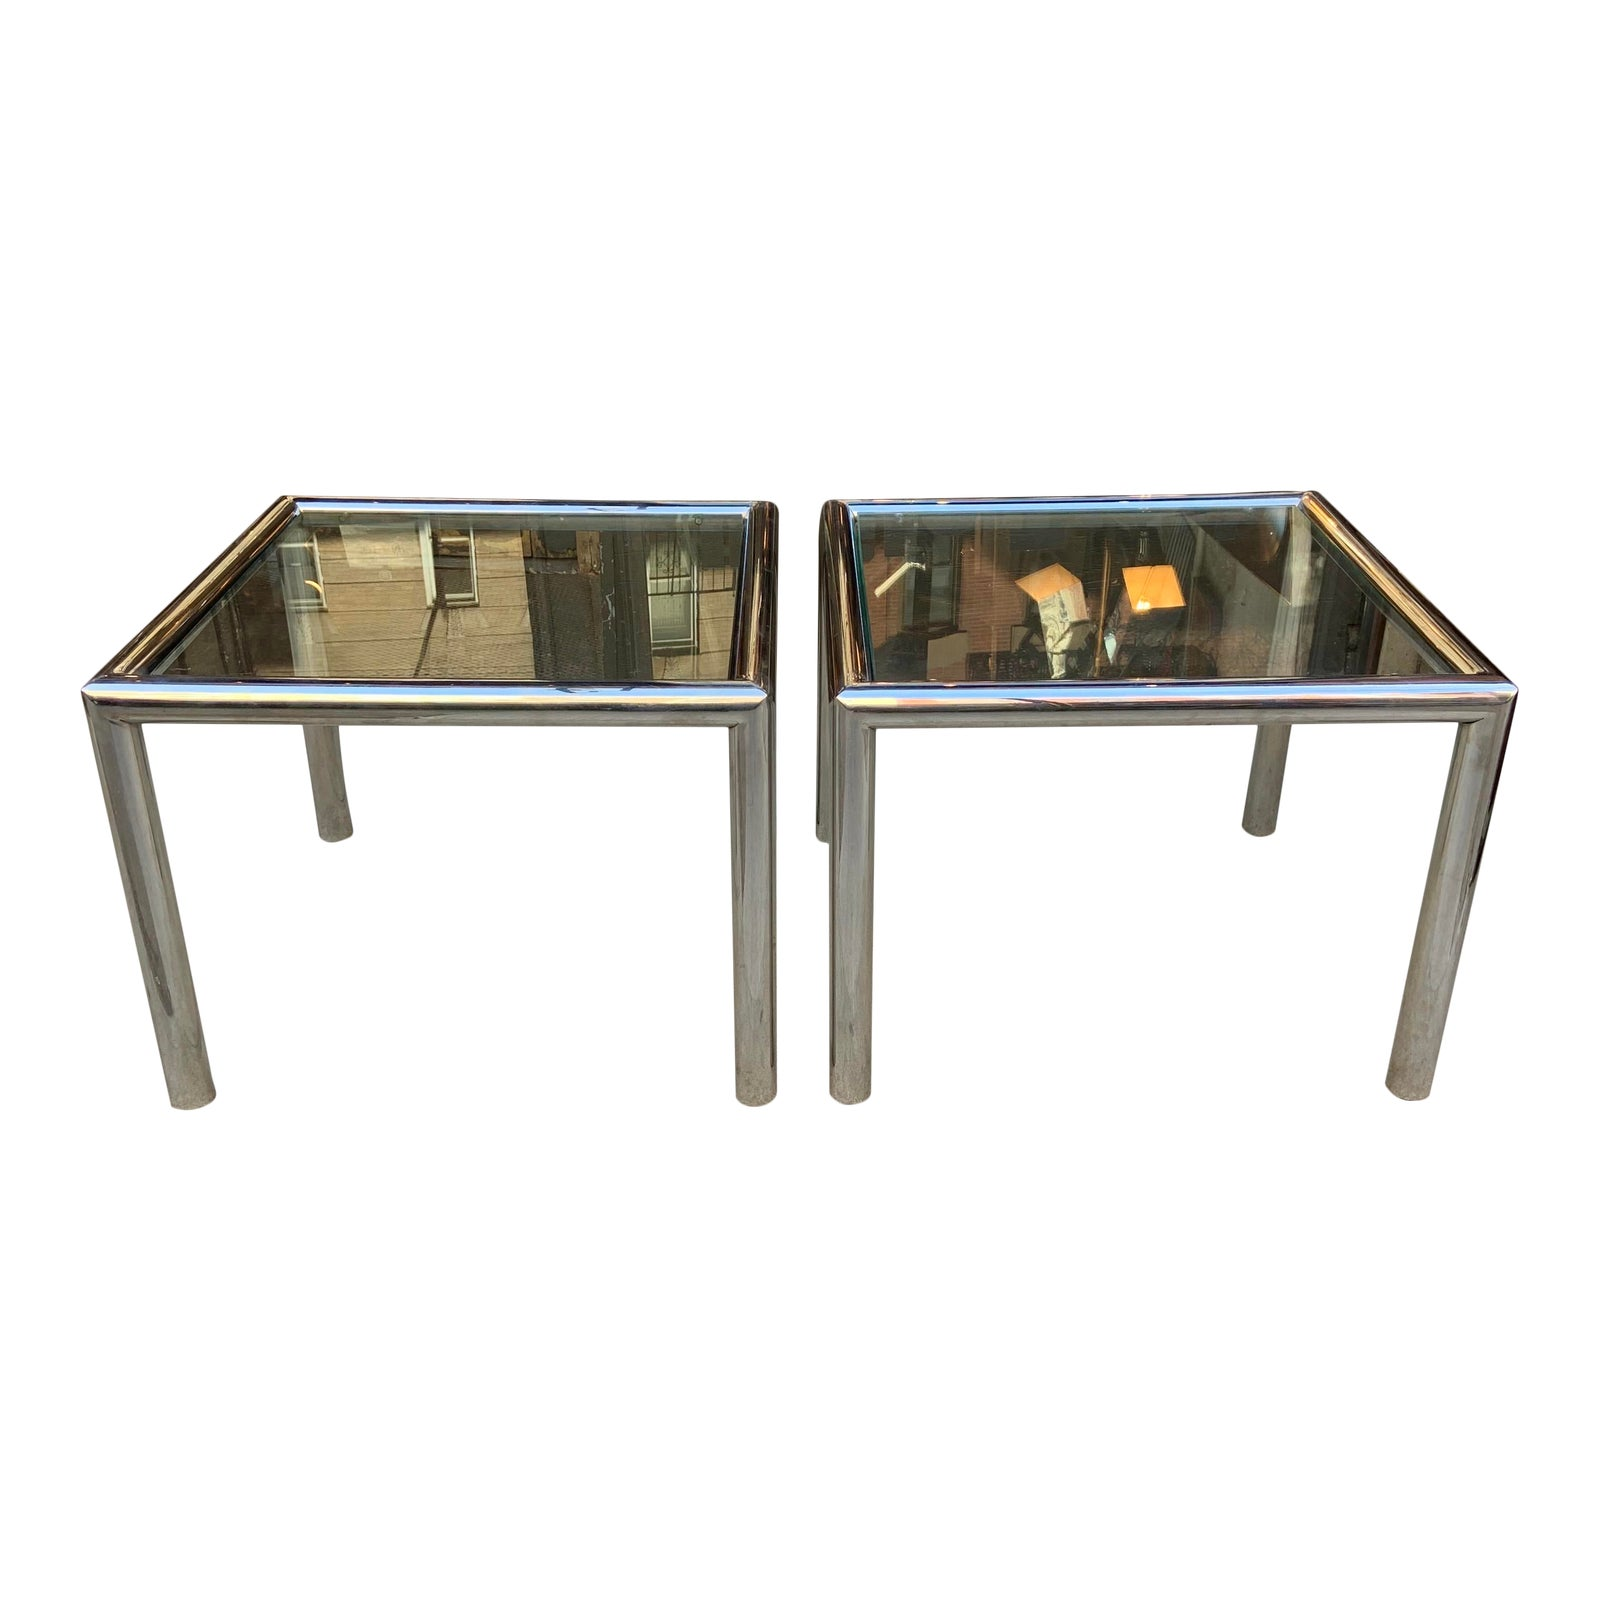 "Pair of ""Tubo"" side tables by John Mascheroni. Constructed of beautifully welded polished aluminum 2 1/2"" cylinders with 3/8"" glass that floats within the frame. Tables retain their adjustable, self leveling glides."